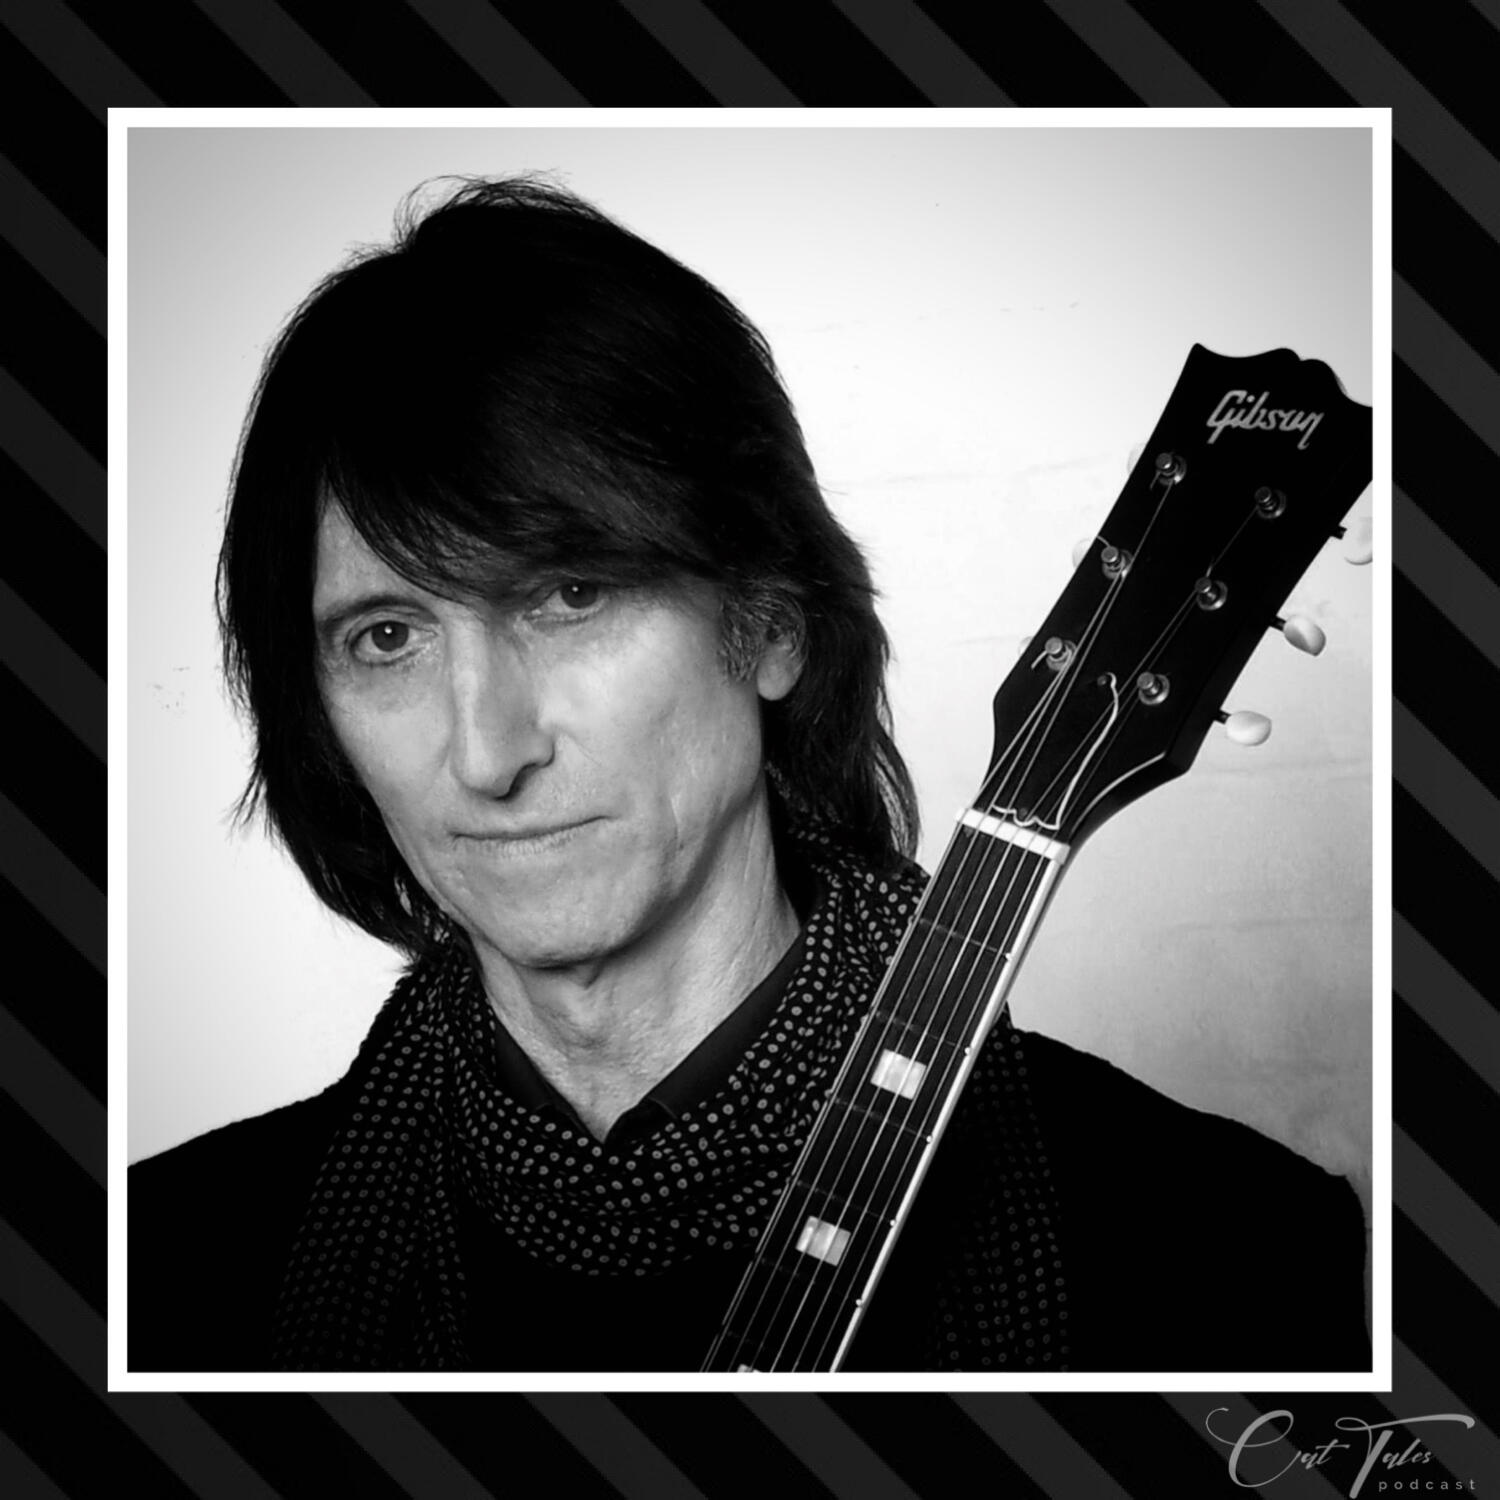 85: The one with Badfinger's Bob Jackson